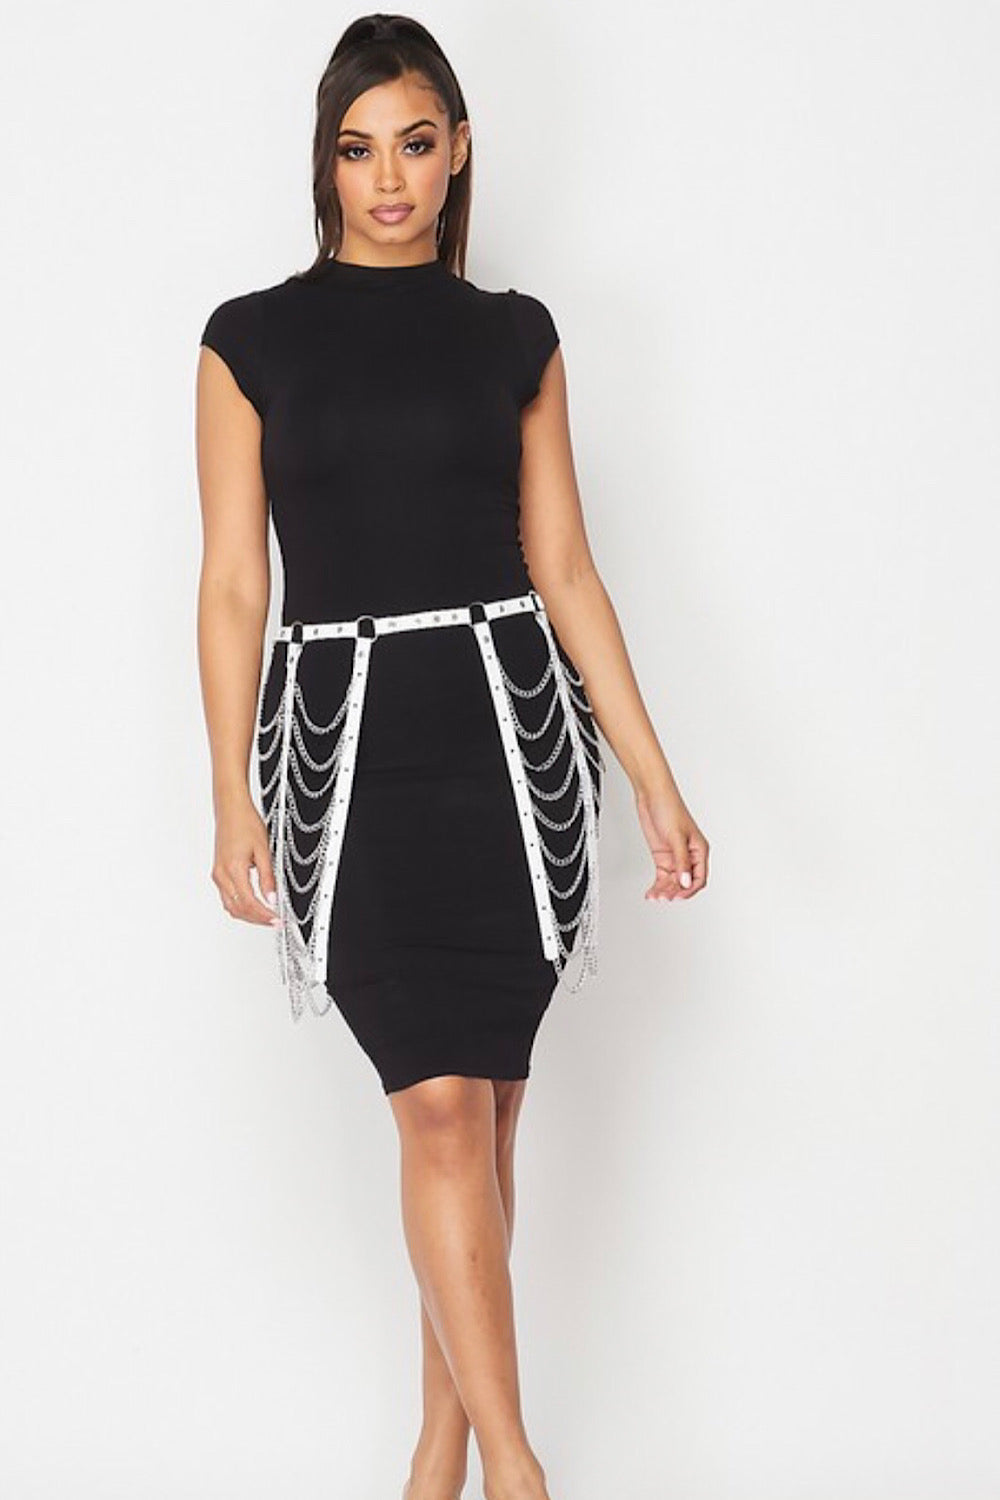 Link Up White Chain Skirt